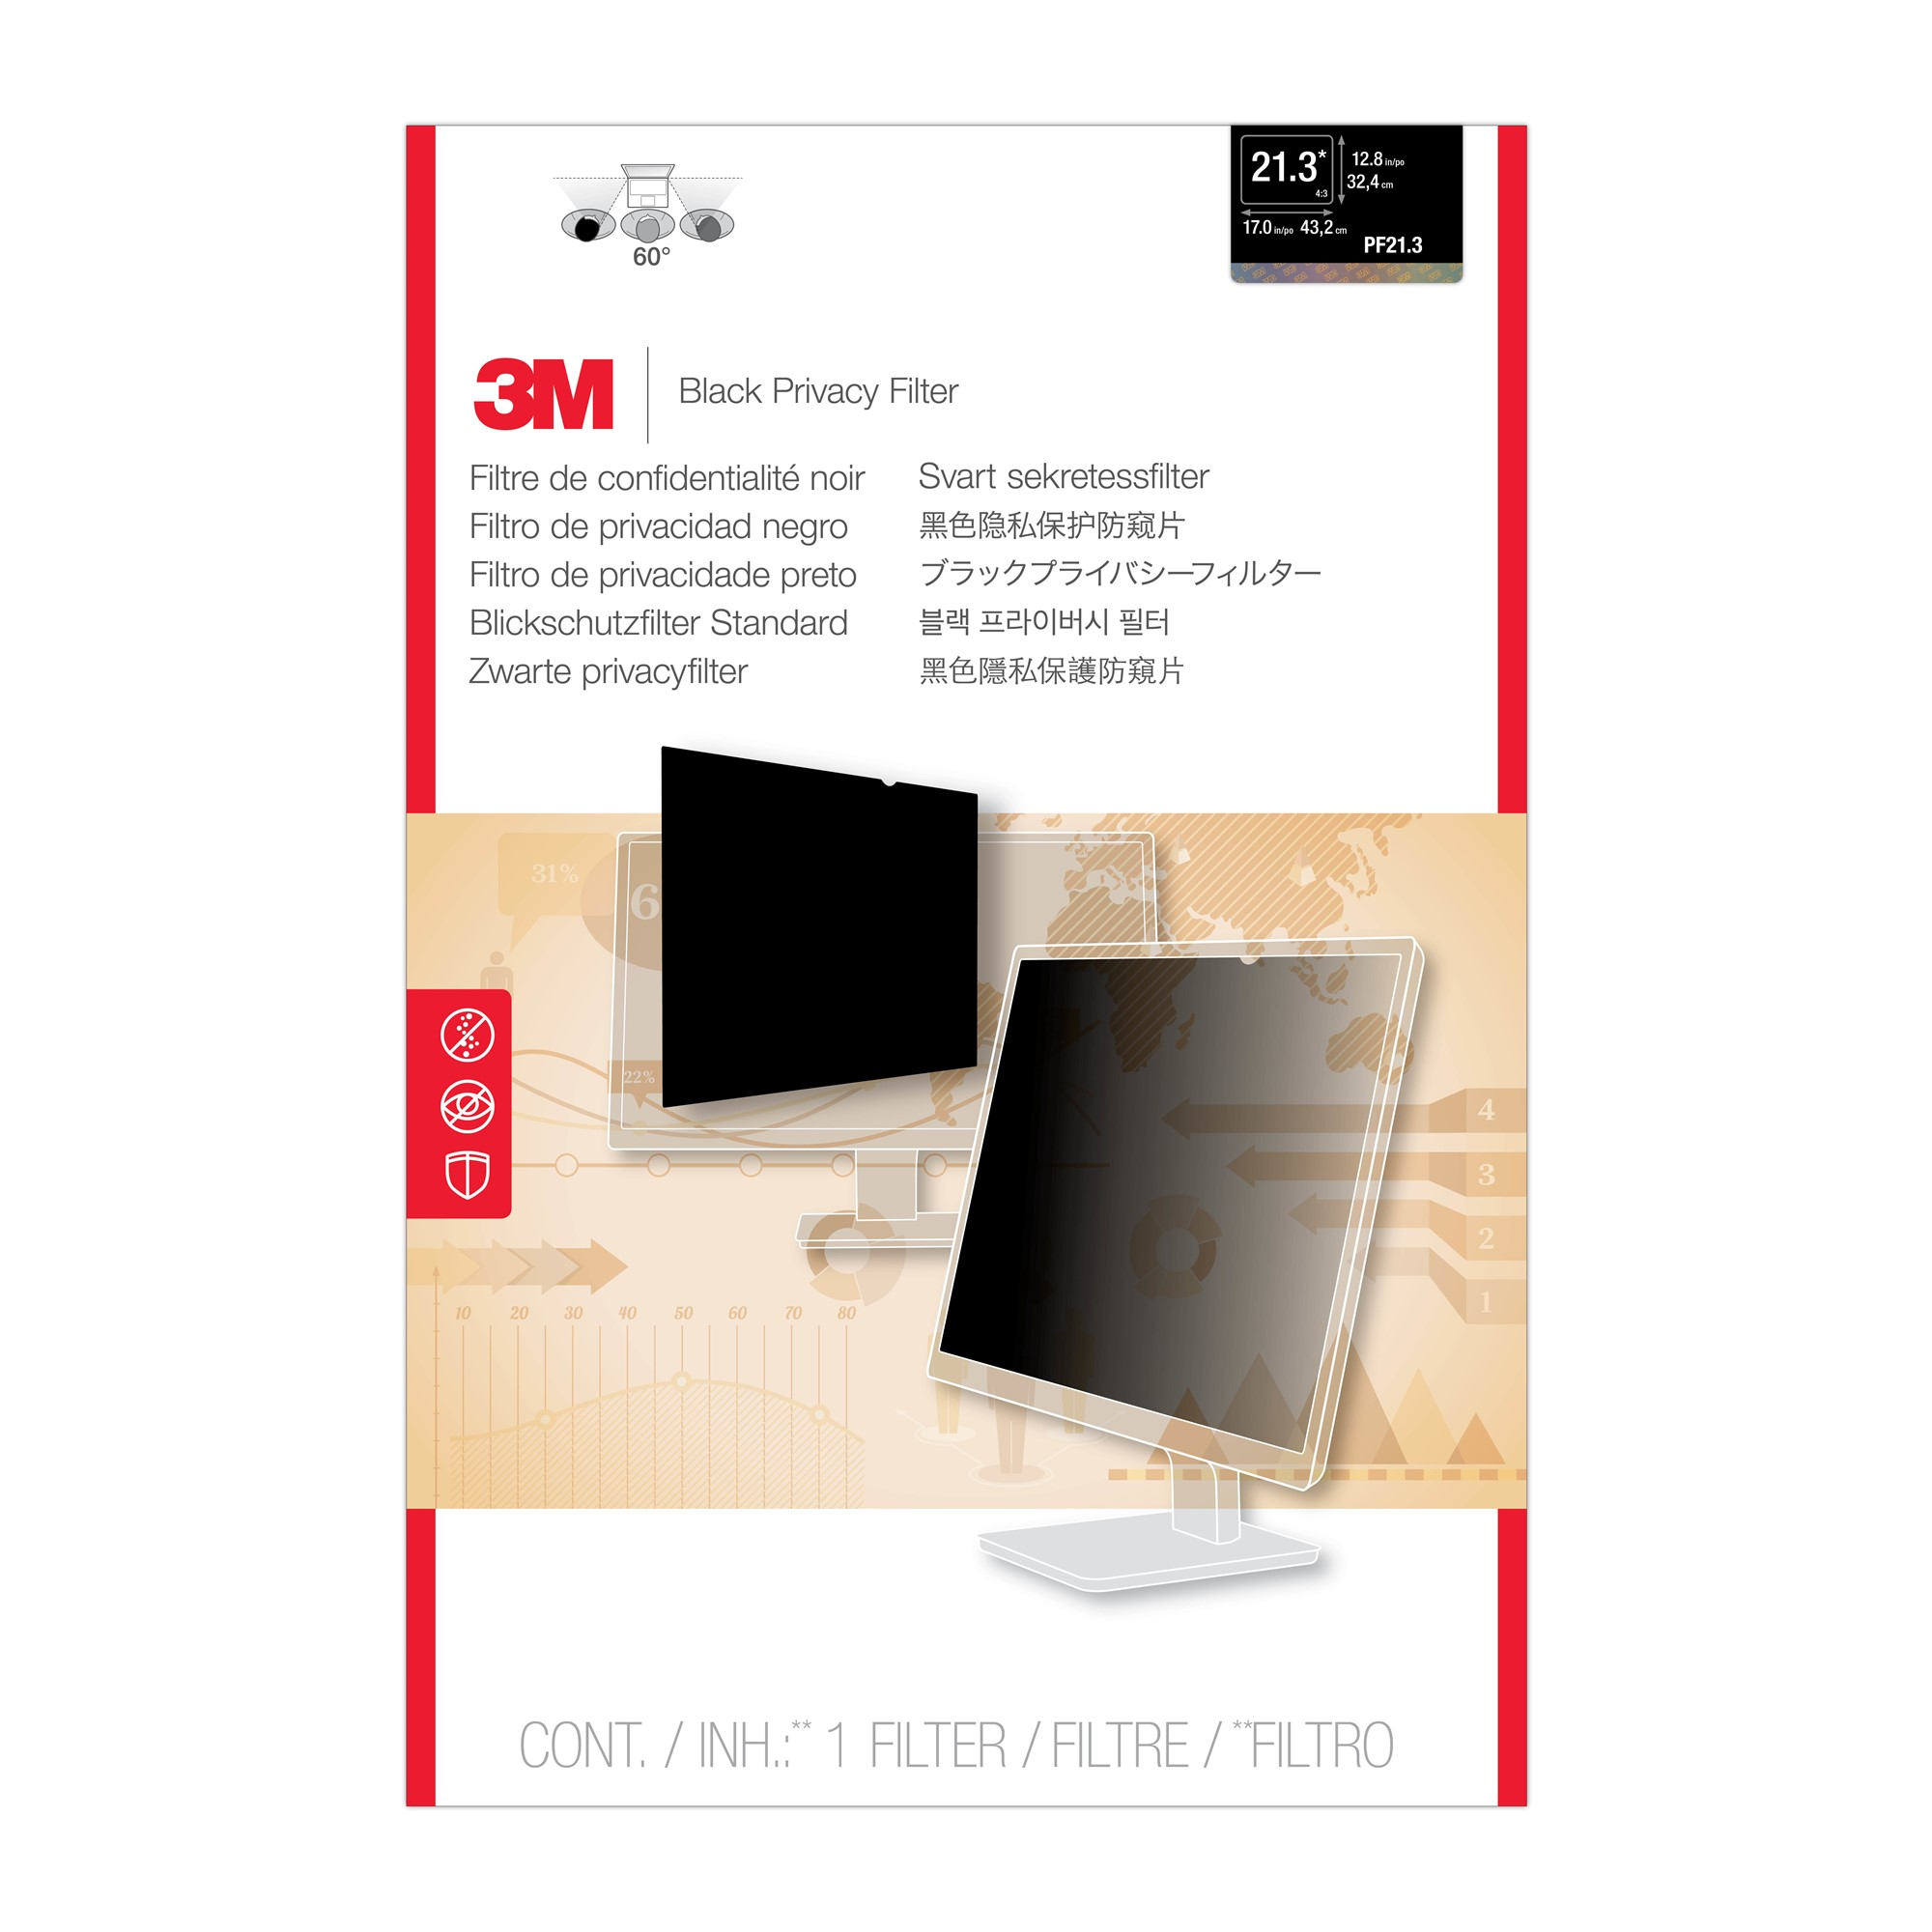 3M 98044054173 PF21.3 PRIVACY FILTER FOR DESKTOP LCD MONITOR 21.3